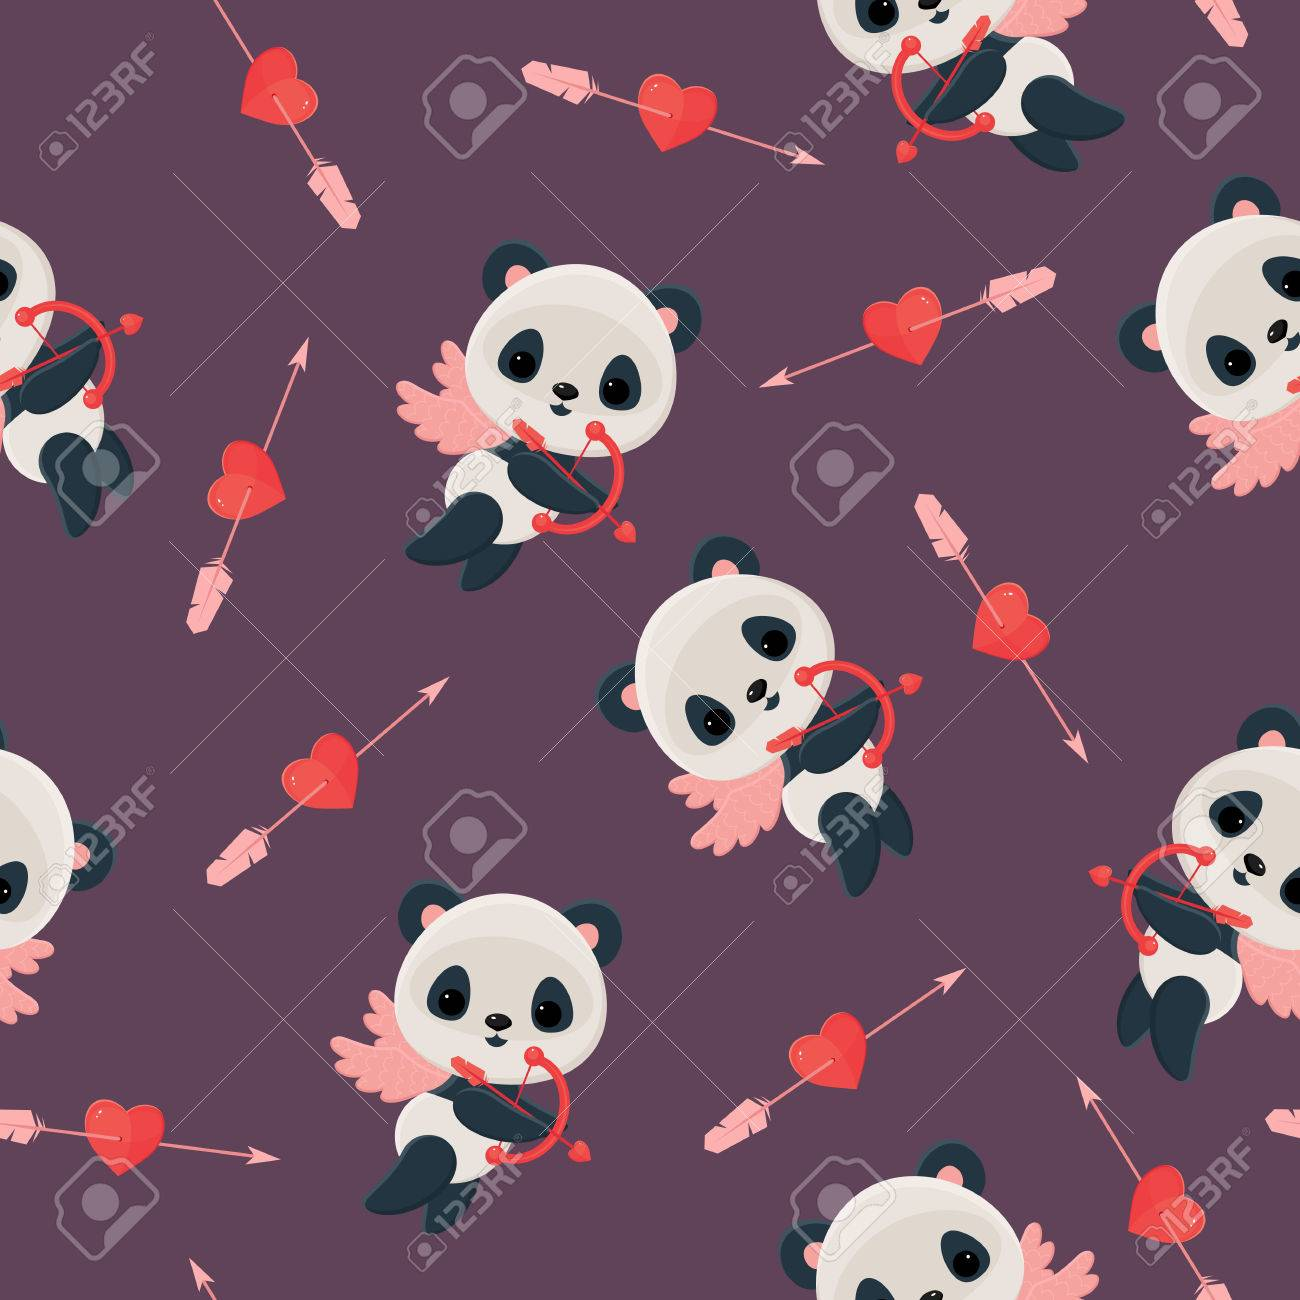 Seamless pattern with panda cupid. Saint Valentine's Day wallpaper. Panda cupid with bow,